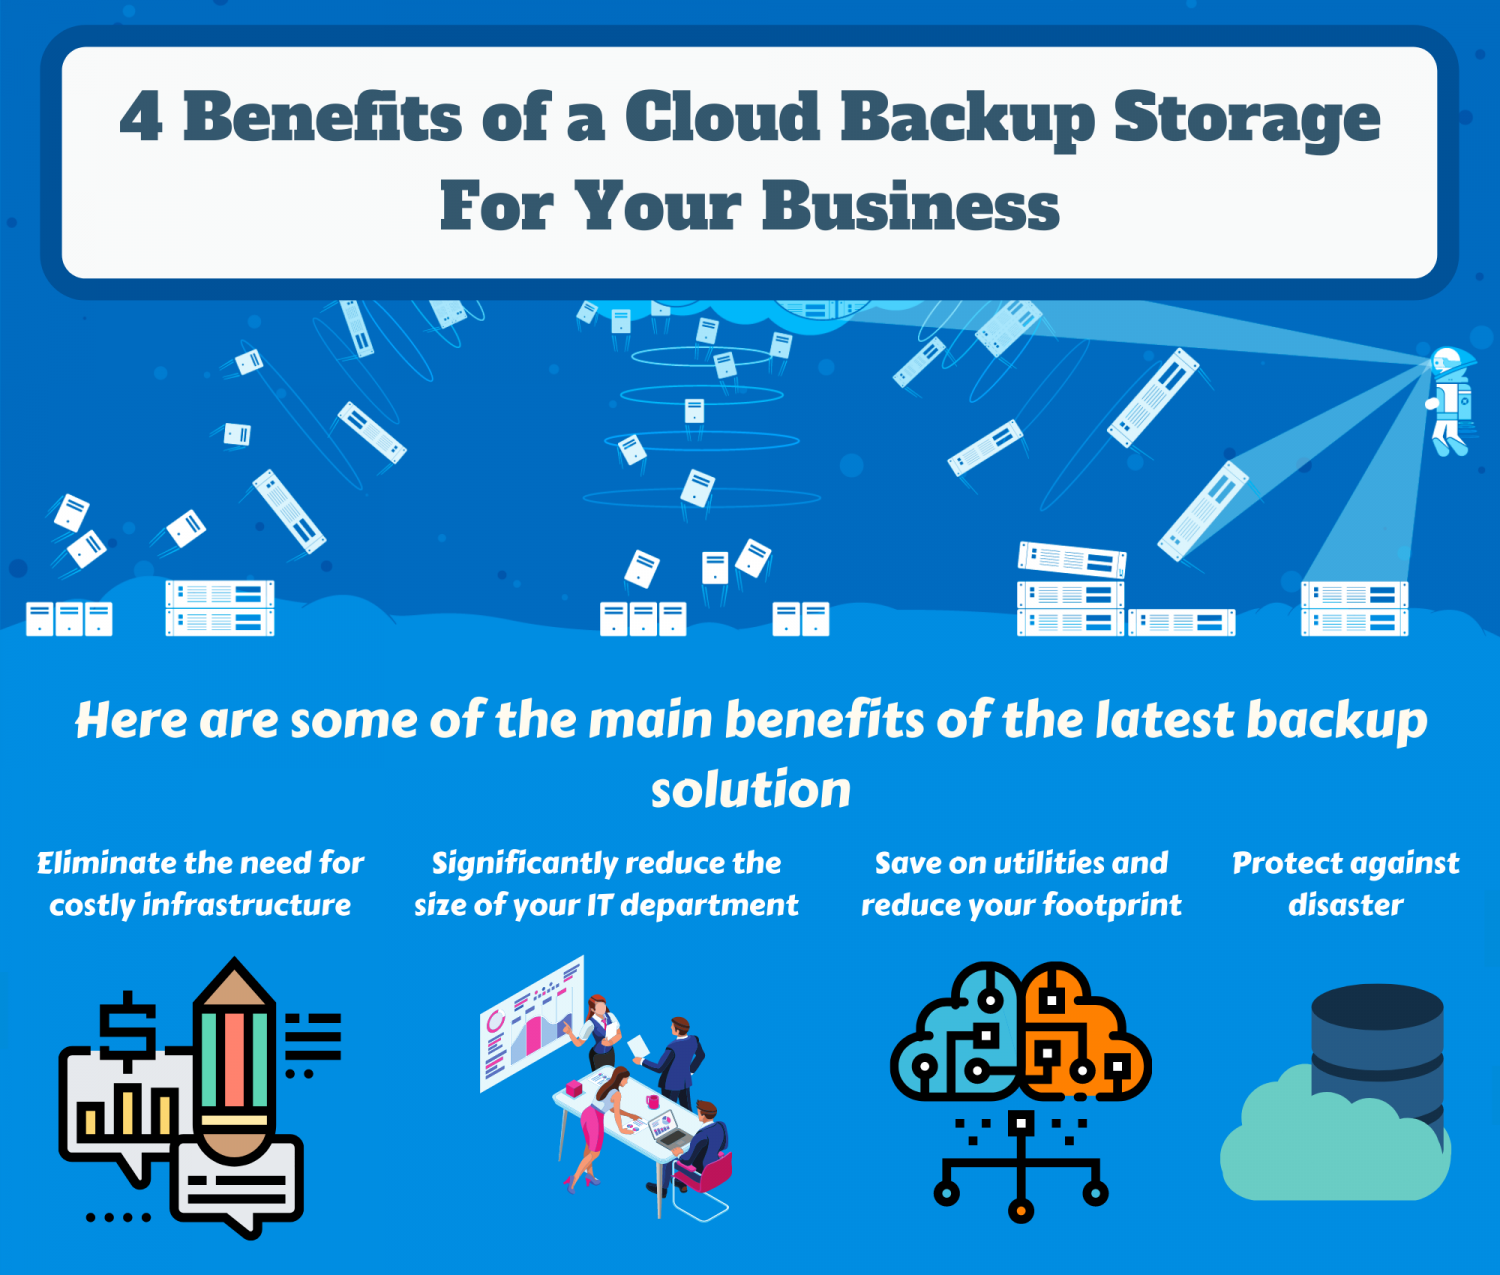 4 Benefits of a Cloud Backup Storage For Your Business Infographic